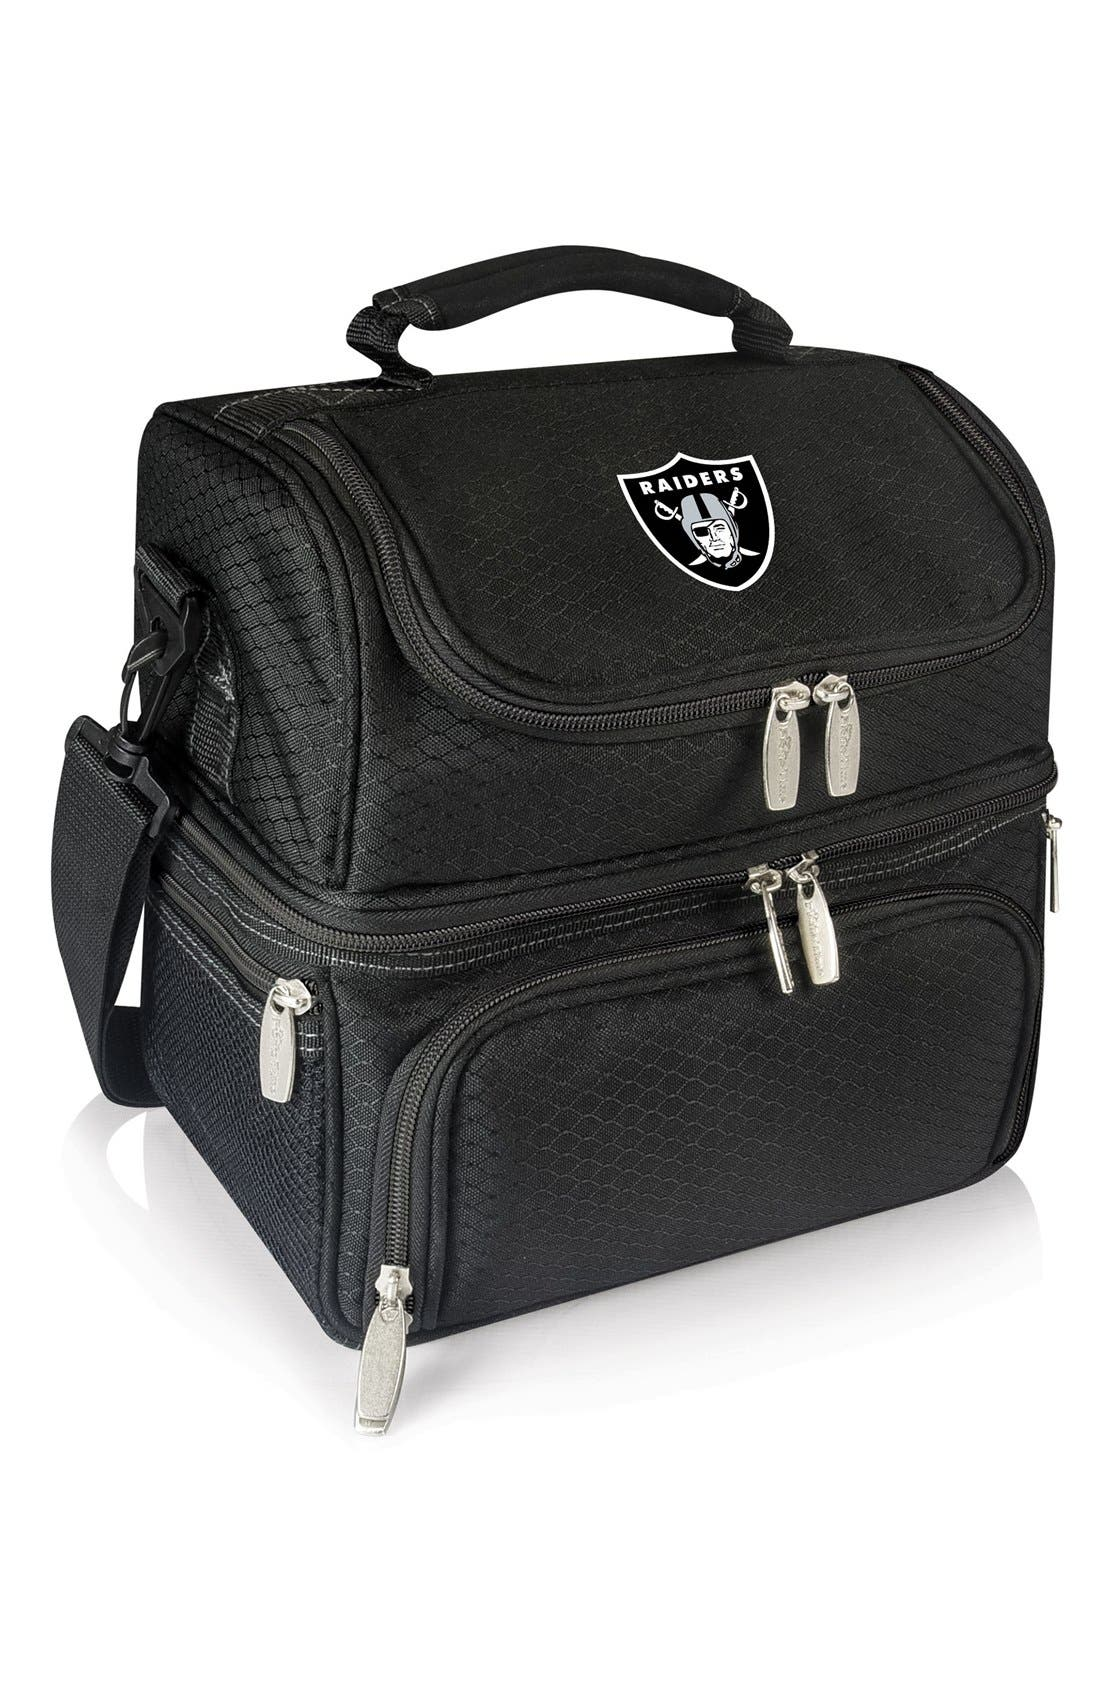 'Pranzo' NFL Insulated Lunch Box,                         Main,                         color, Oakland Raiders/ Black